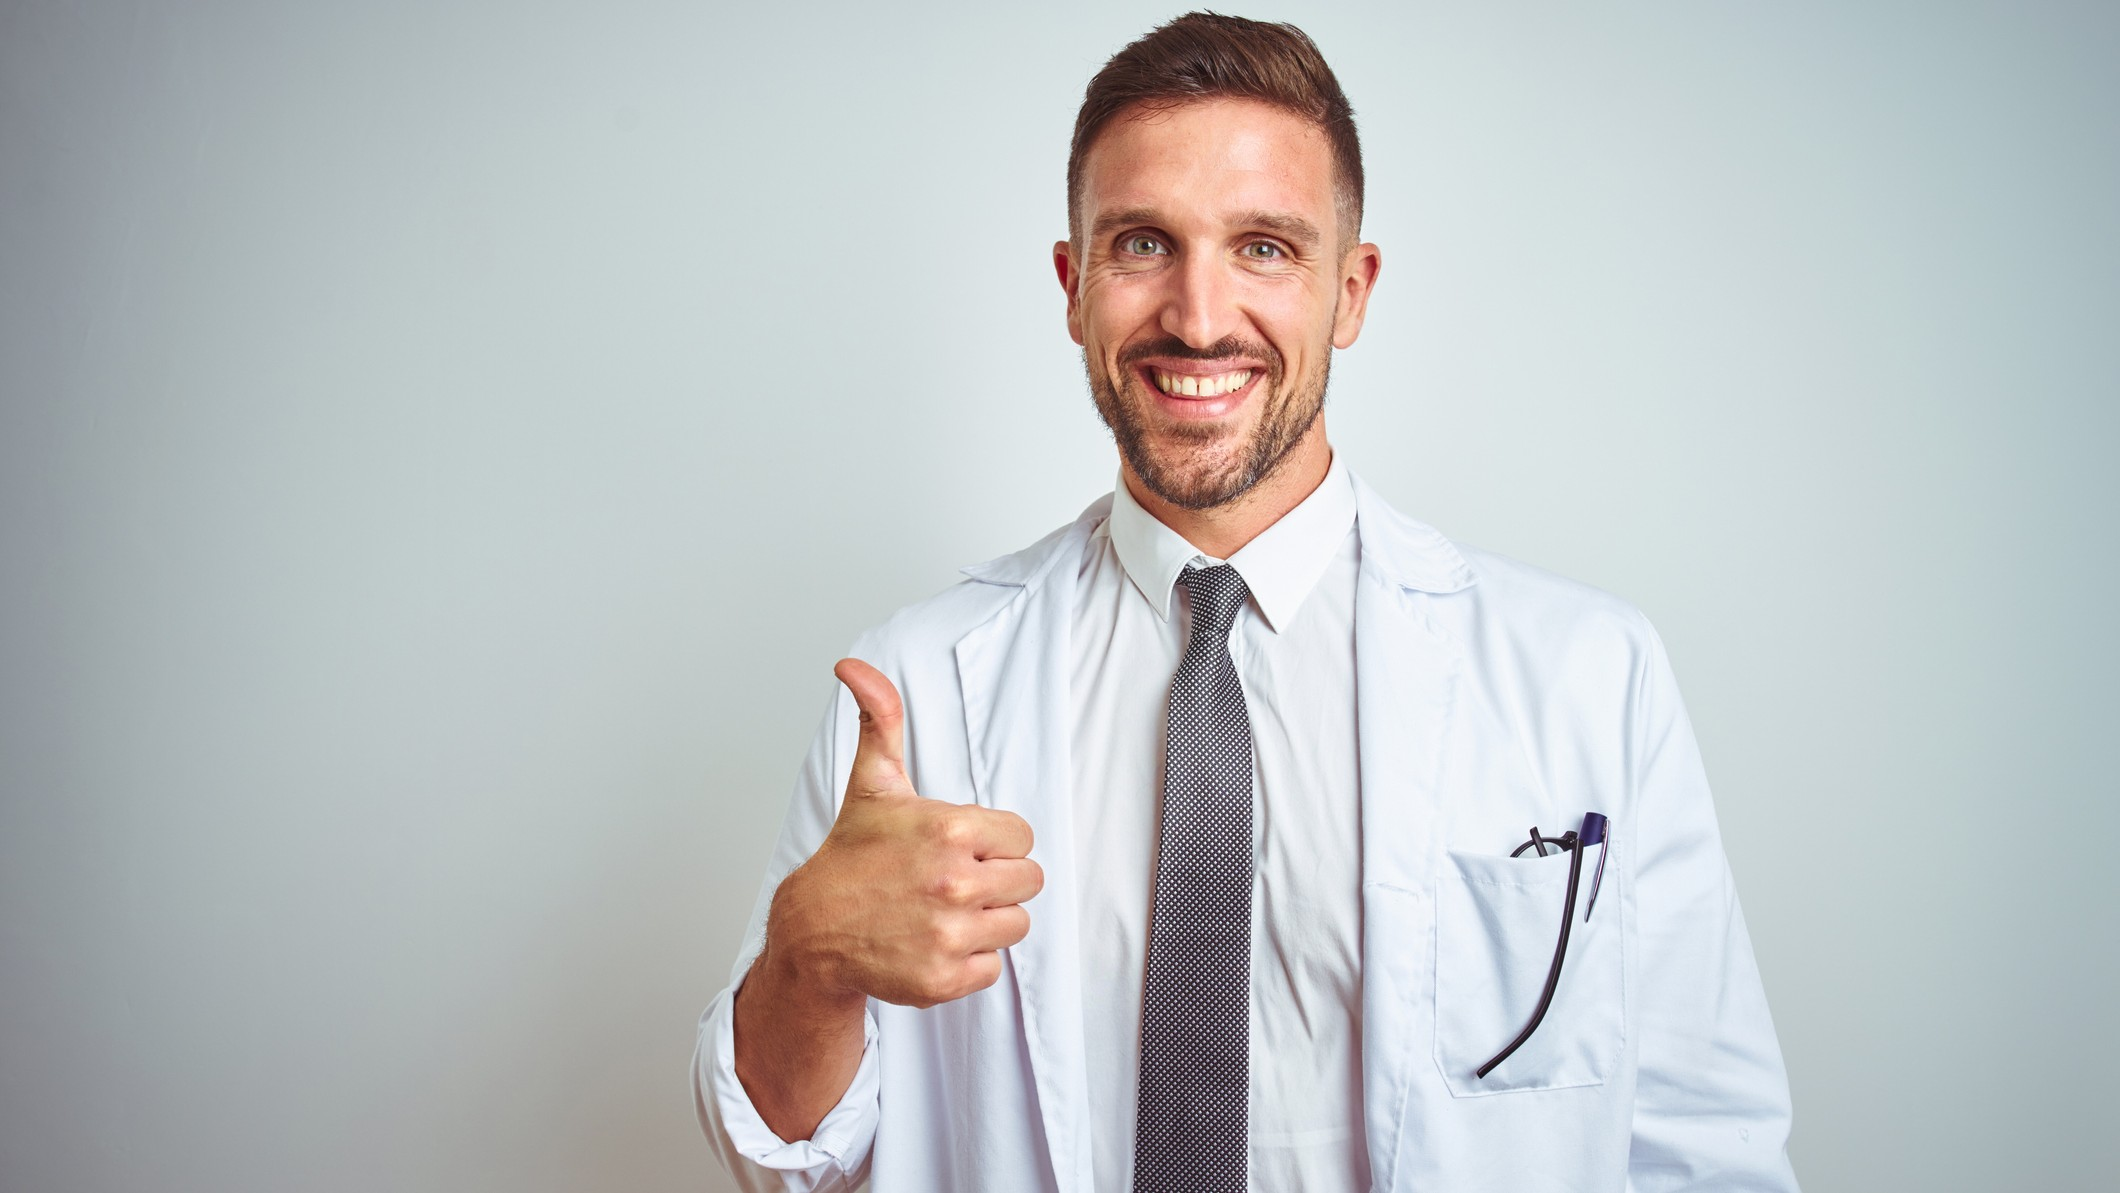 medical asx share price represented by doctor giving thumbs up